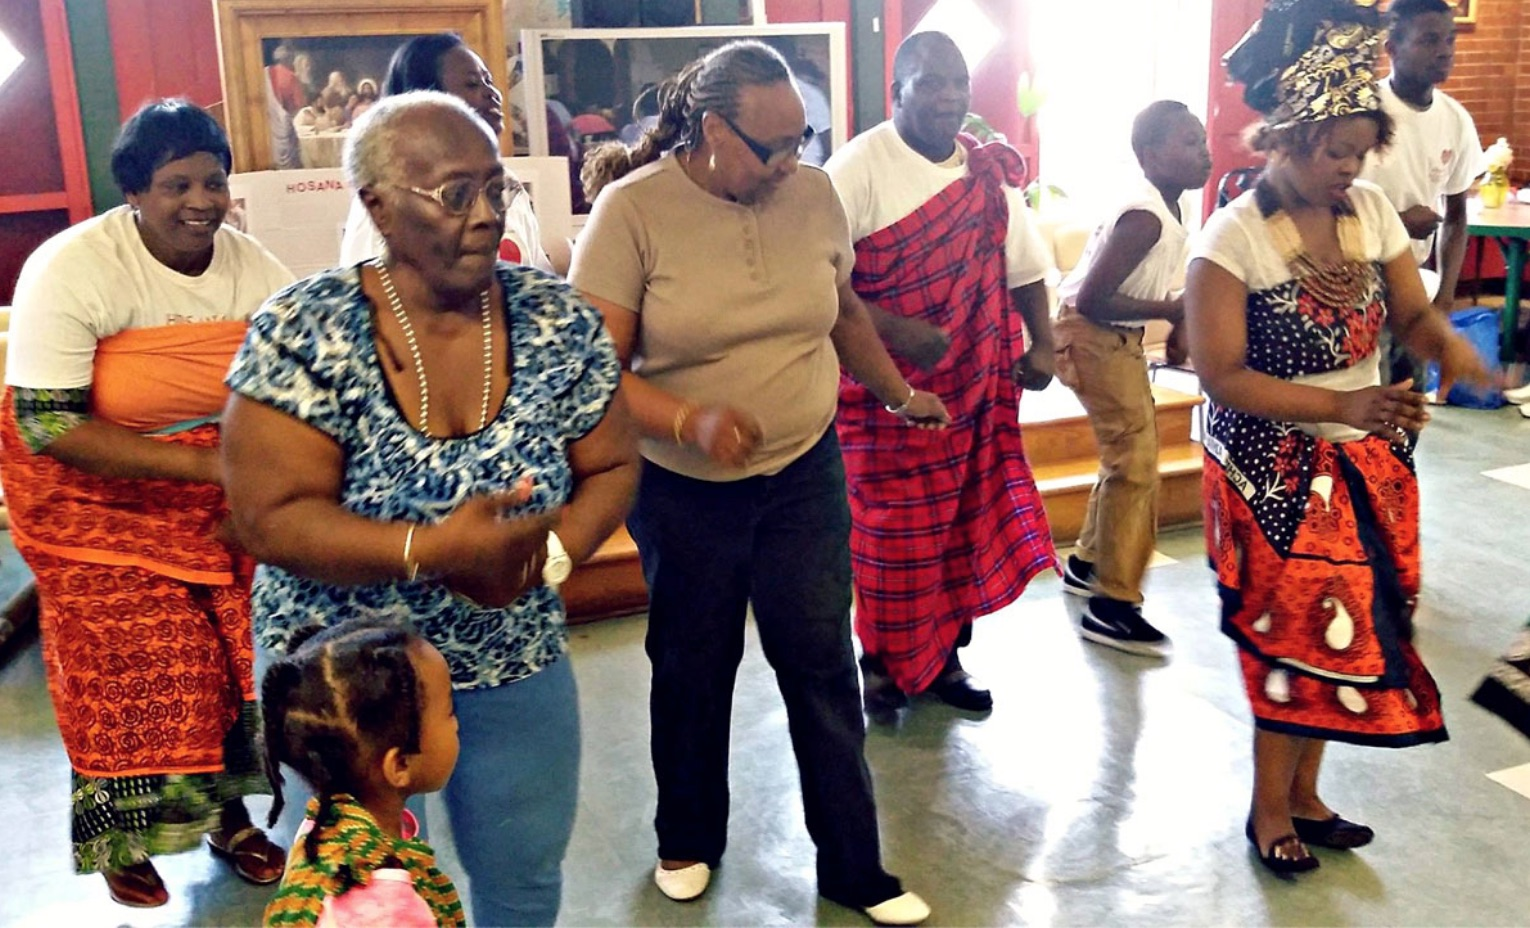 Hosana_Performs_a_Traditional_Dance_at_Huntington_Senior_Center__Philadelphia_-_Hosana_Home_Health_Care.jpg